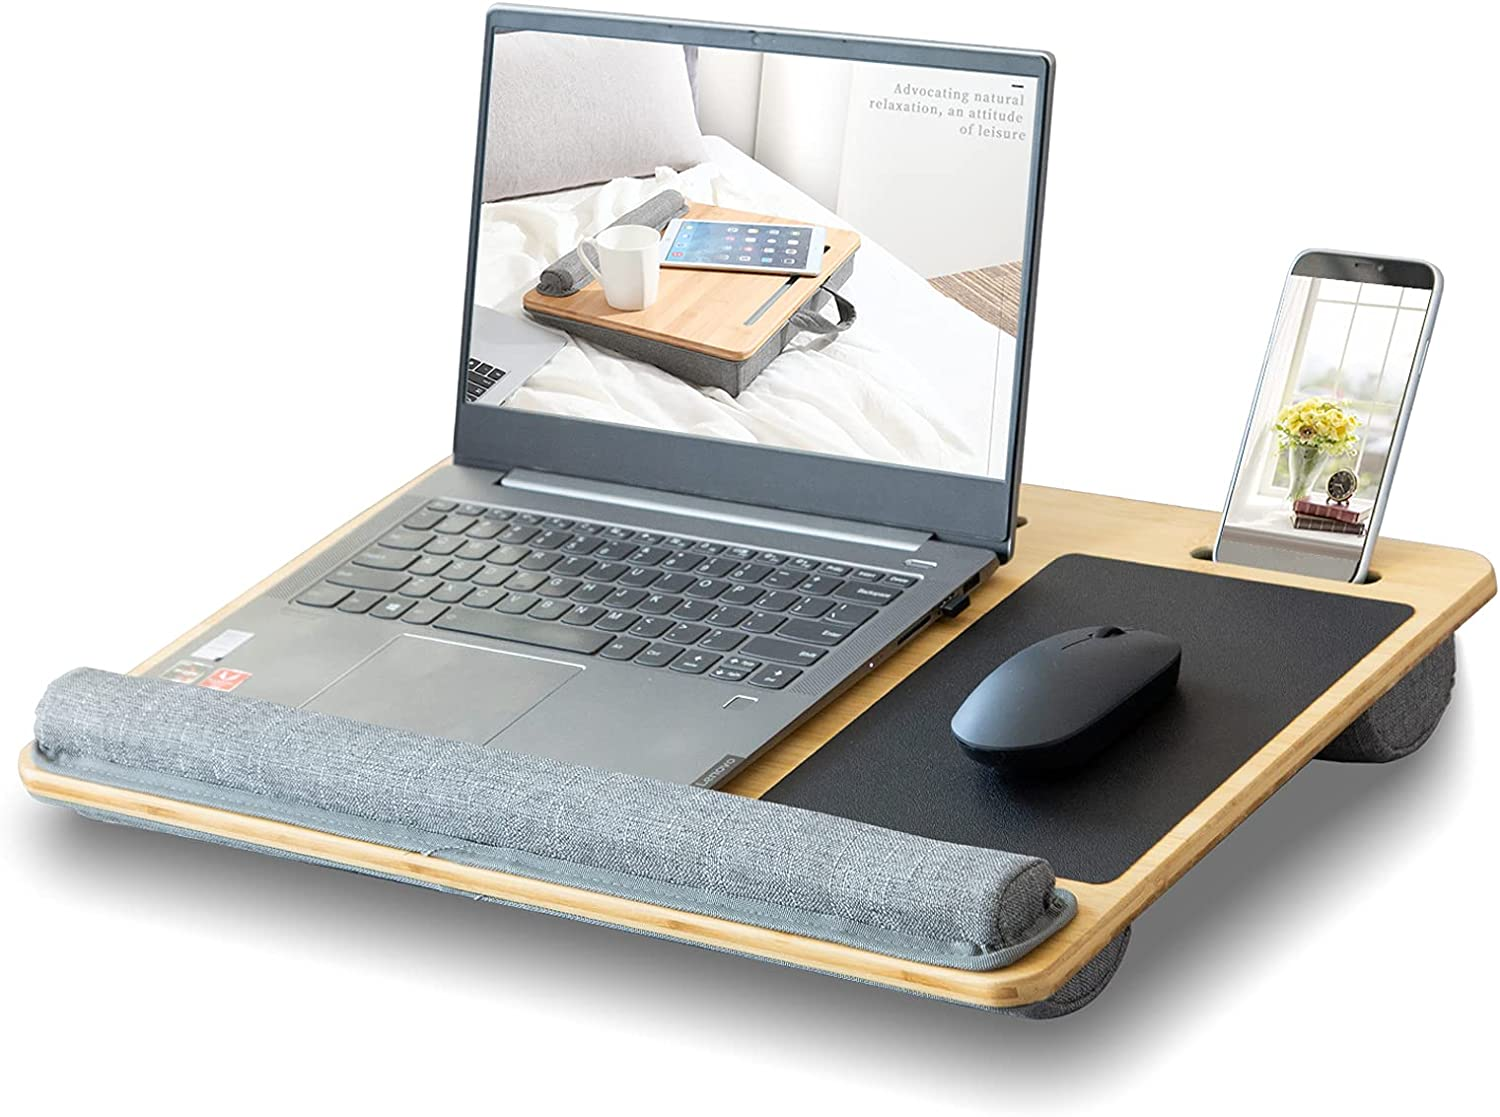 """Laptop Lap Desk, Fits Up to 17"""" Laptop, Laptop Desk with 2 Slots Holder Use for Pencil Phone Tablet, Lap Desk with Cushion, Wrist Rest & Built-in Mouse Pad, Laptop Desk for Bed & Sofa (Wood Grain)"""